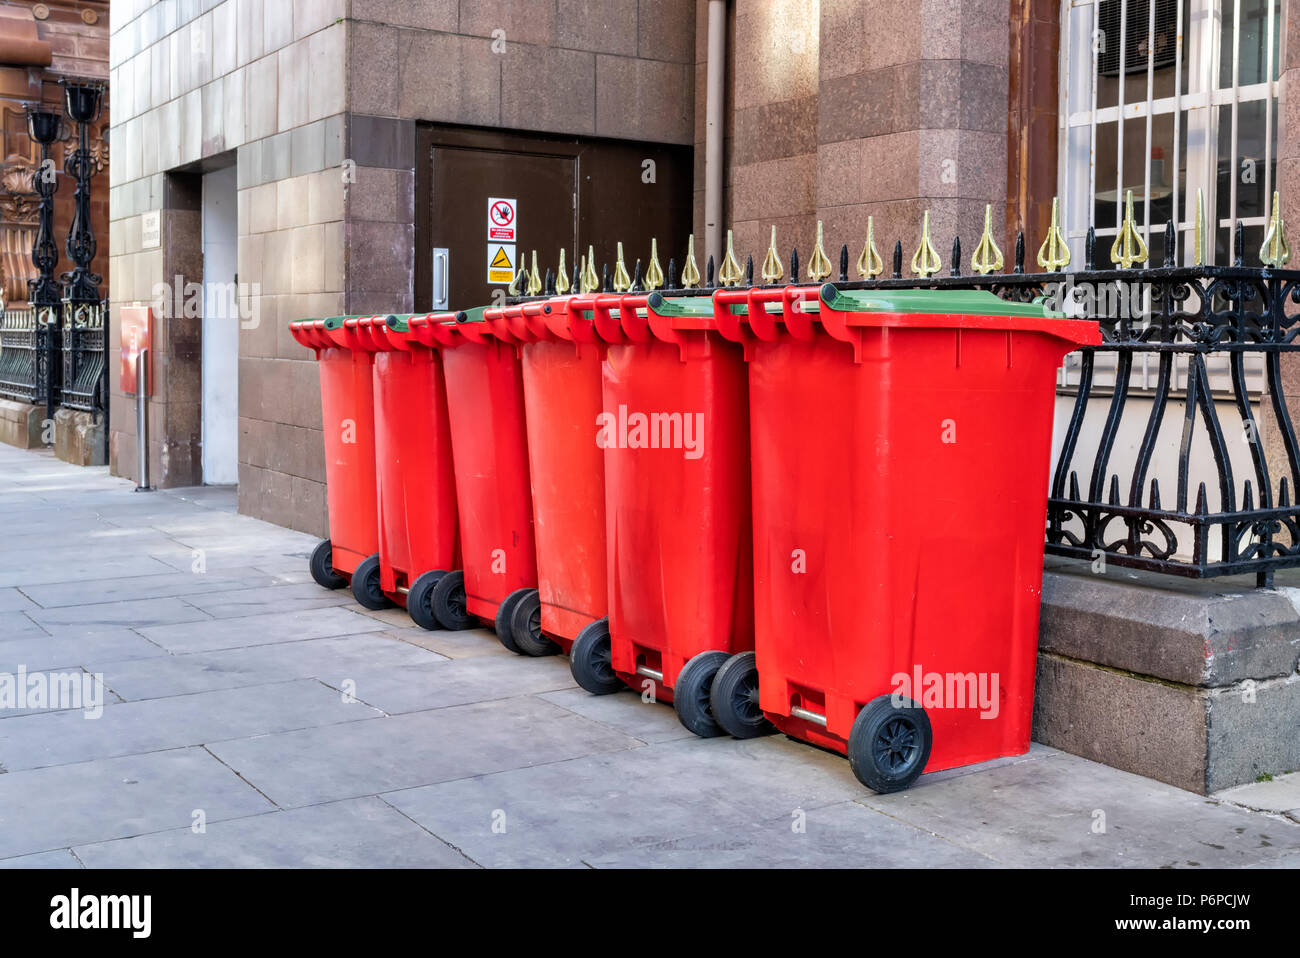 A row of 6 red wheelie bins on the pavement in a street in Manchester City Centre, UK - Stock Image